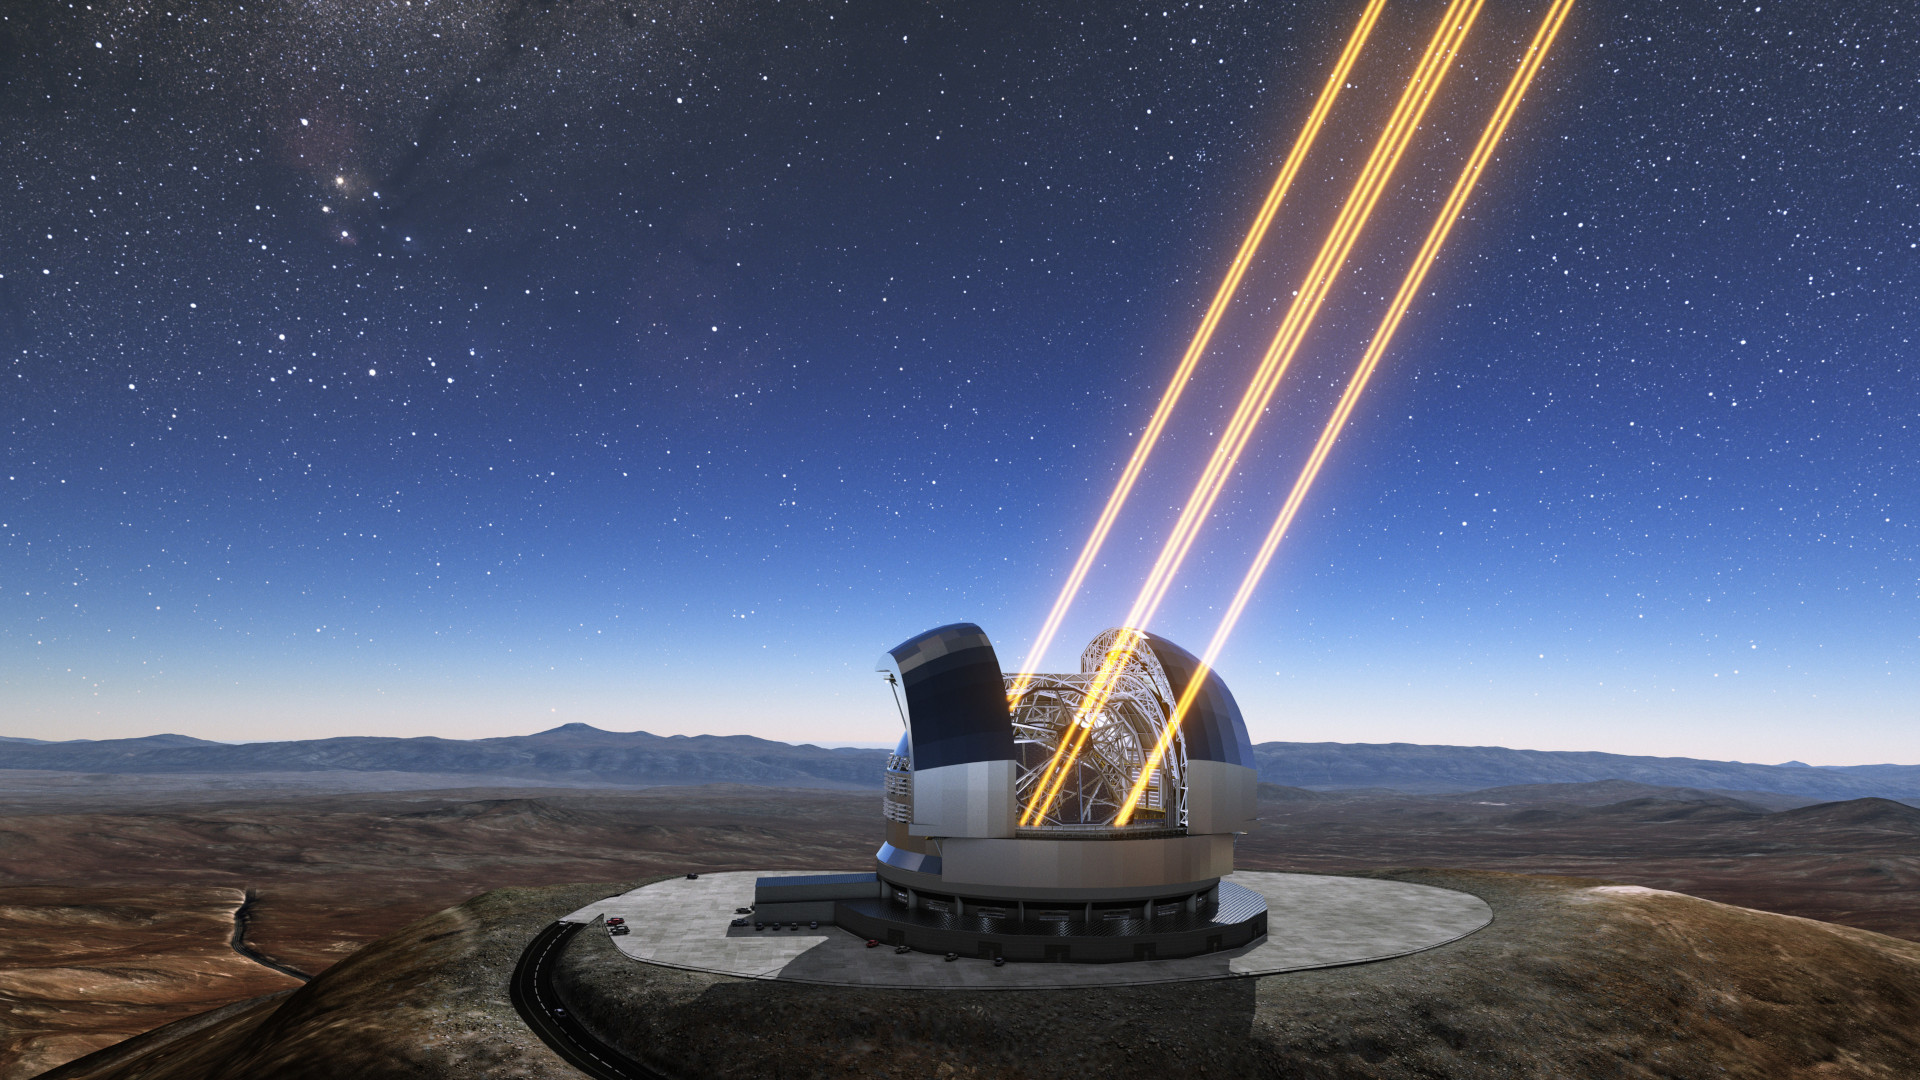 This artist's rendering shows the Extremely Large Telescope in operation on Cerro Armazones in northern Chile. The telescope is shown using lasers to create artificial stars high in the atmosphere. The first stone ceremony for the telescope was attended by the President of Chile, Michelle Bachelet Jeria, on 26 May 2017.